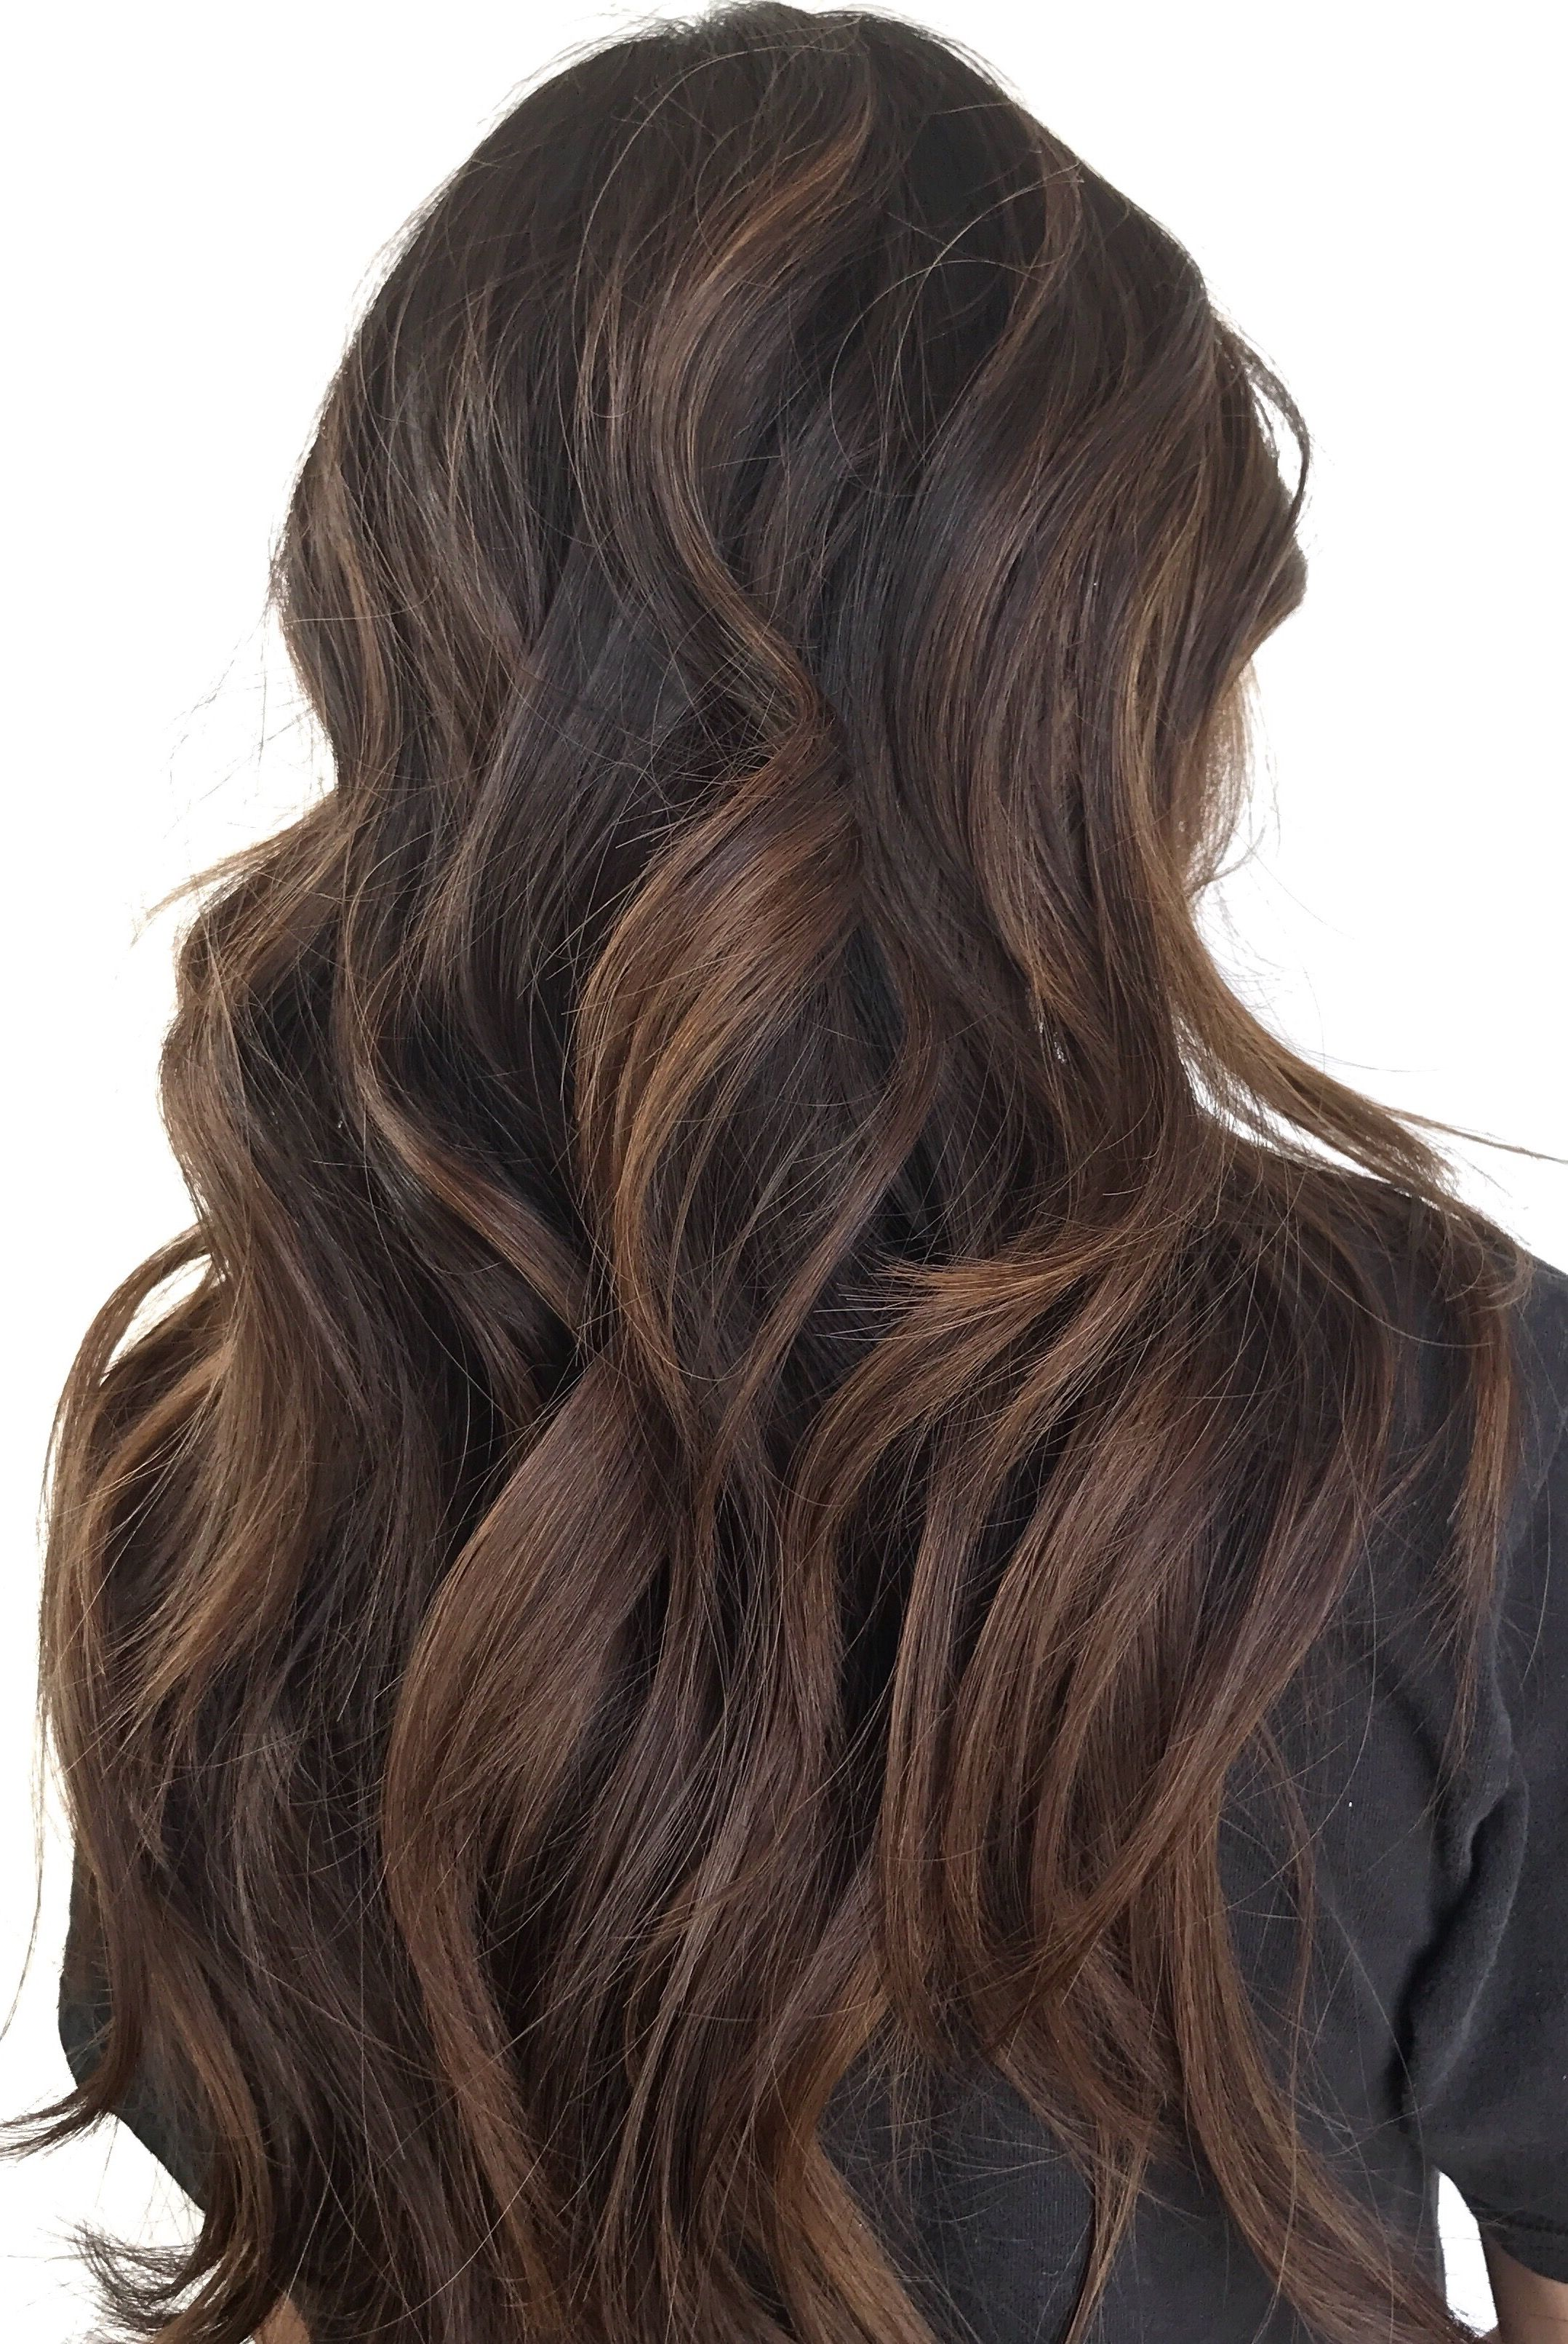 Brown Balayage ; Warm Brown Tones; Long Hair Balayage ; Natural